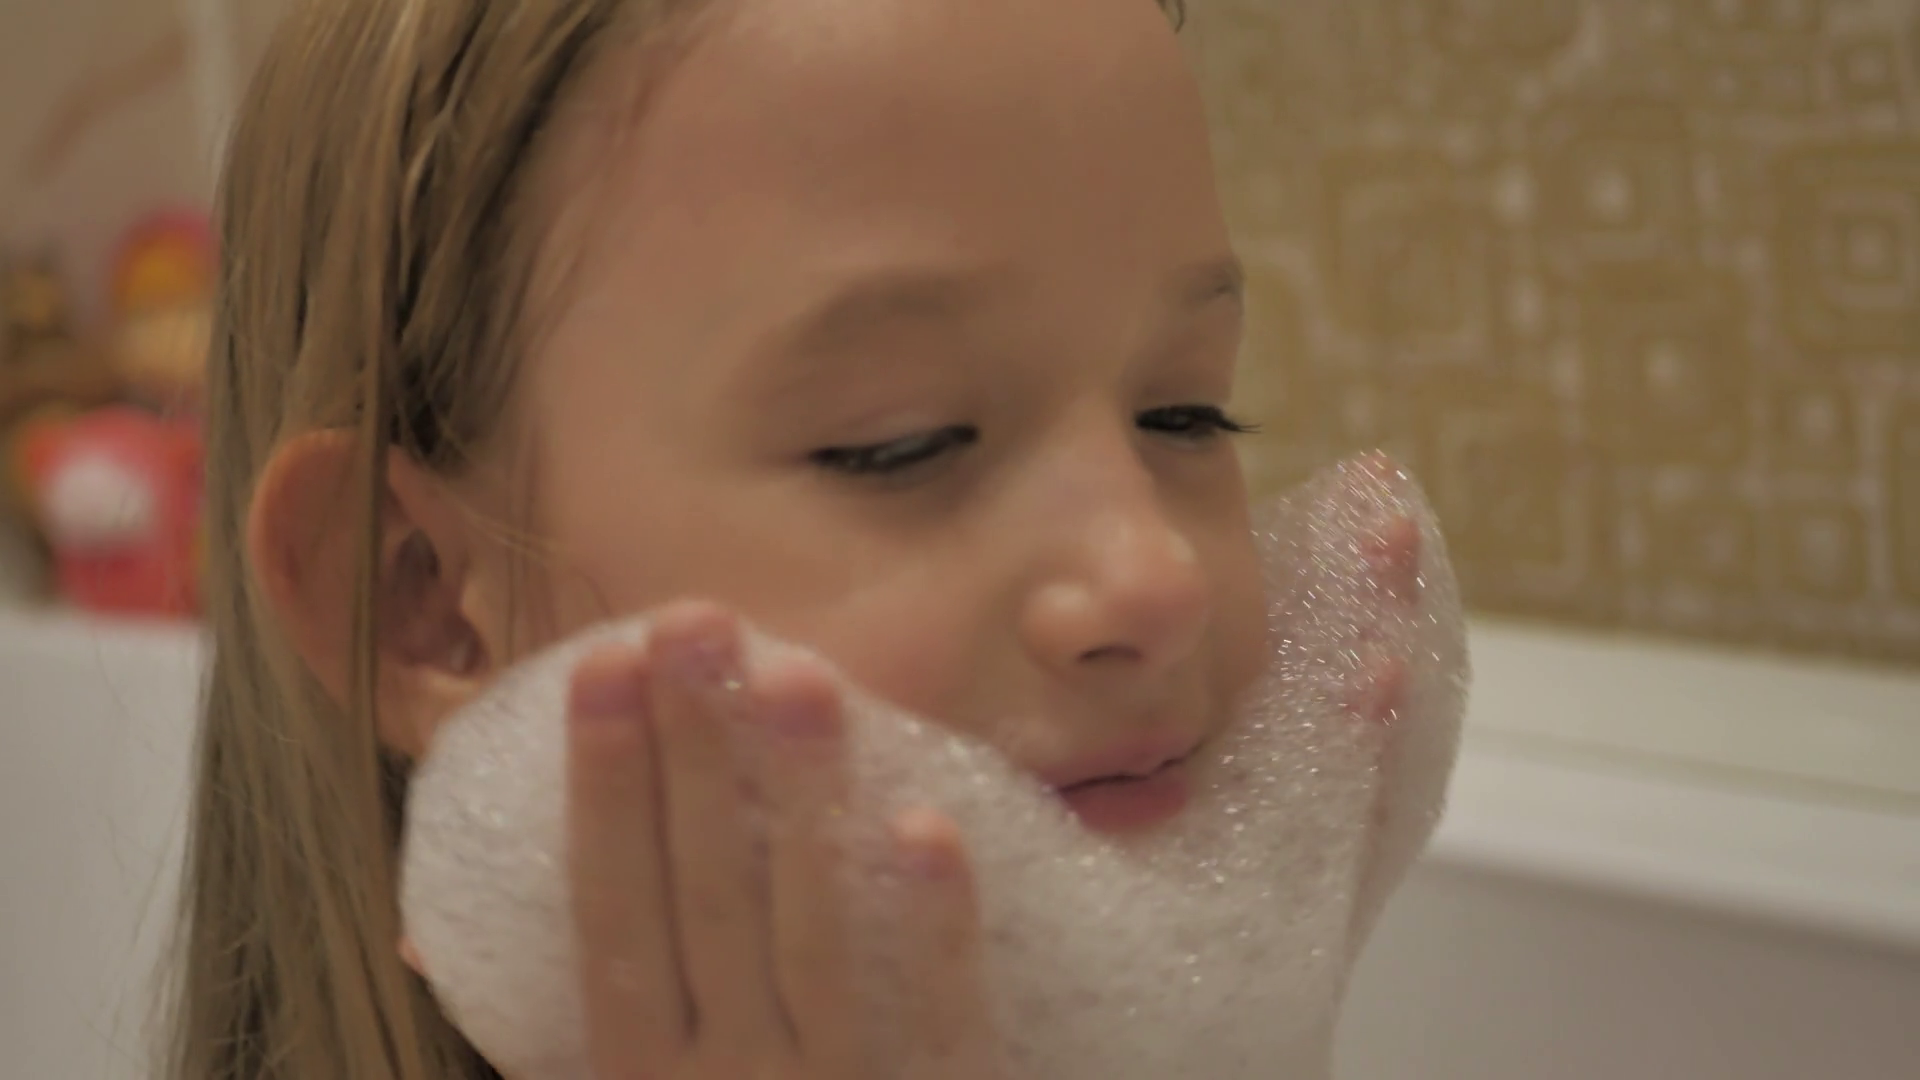 Beautiful young girl taking a bath. Kid is washing herself and blowing to the foam. Pieces of foam flying around. Stock Video Footage - Storyblocks